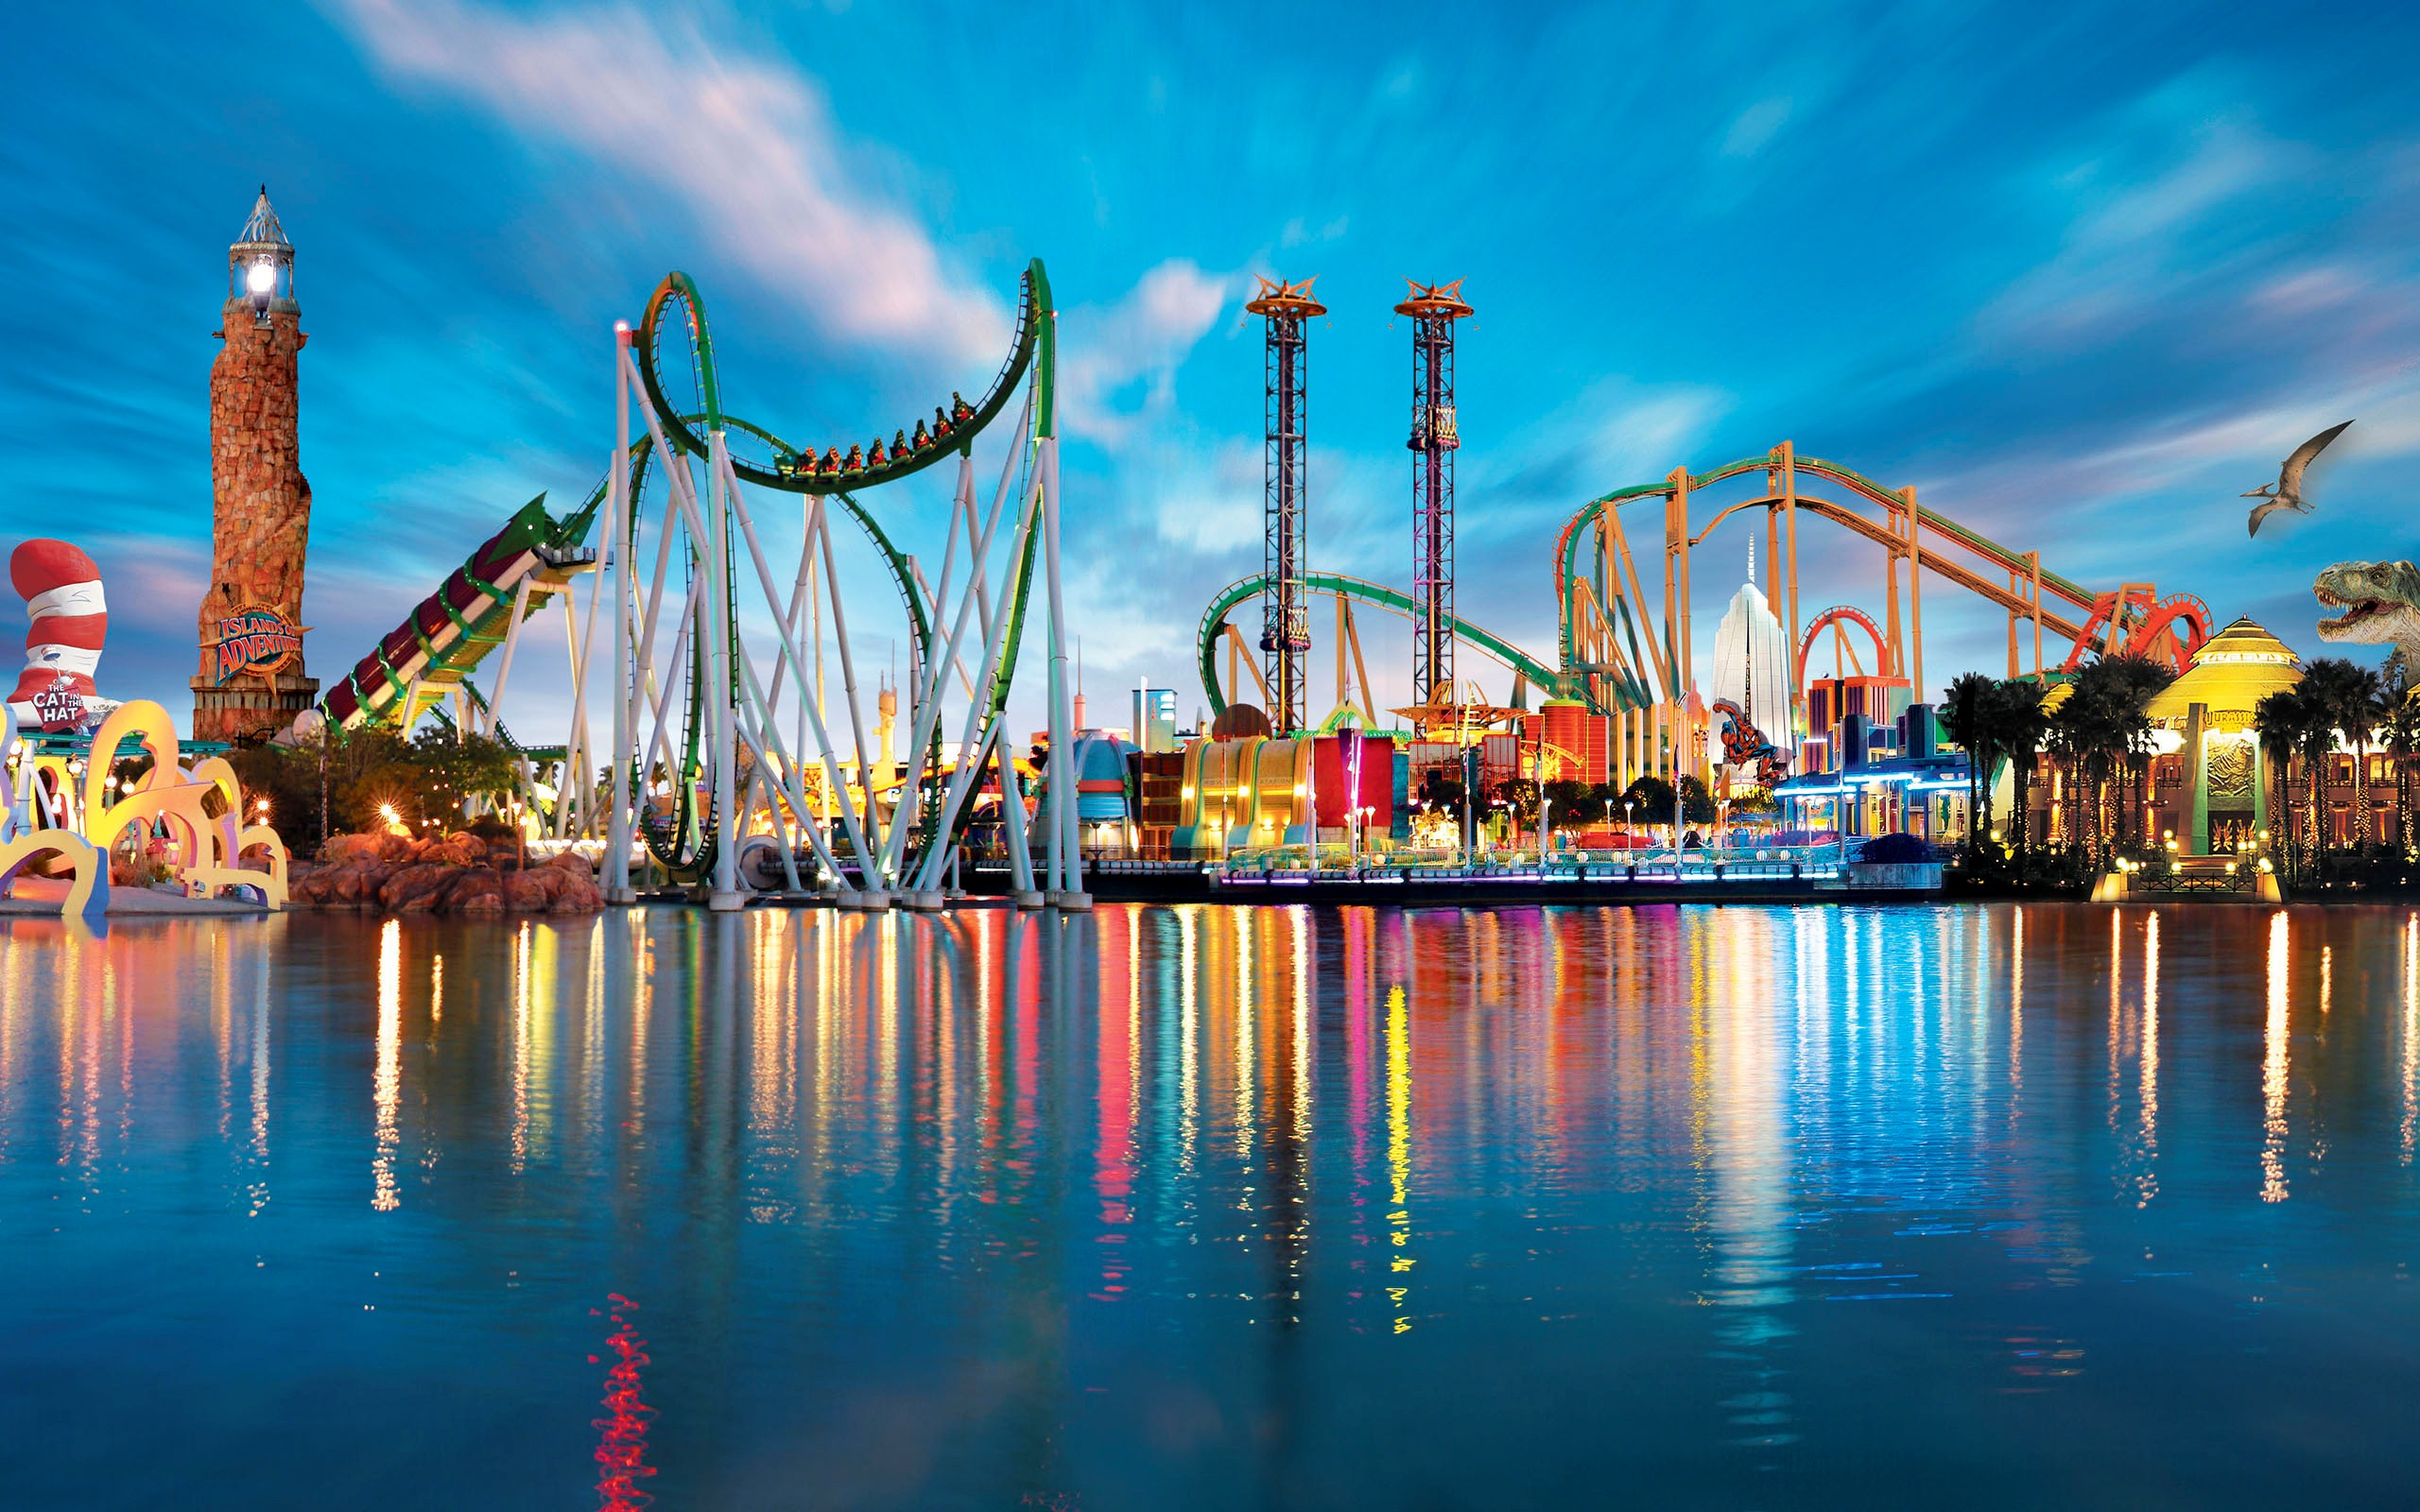 Islands of Adventure Theme Park in Florida USA Photo HD Wallpapers 2560x1600